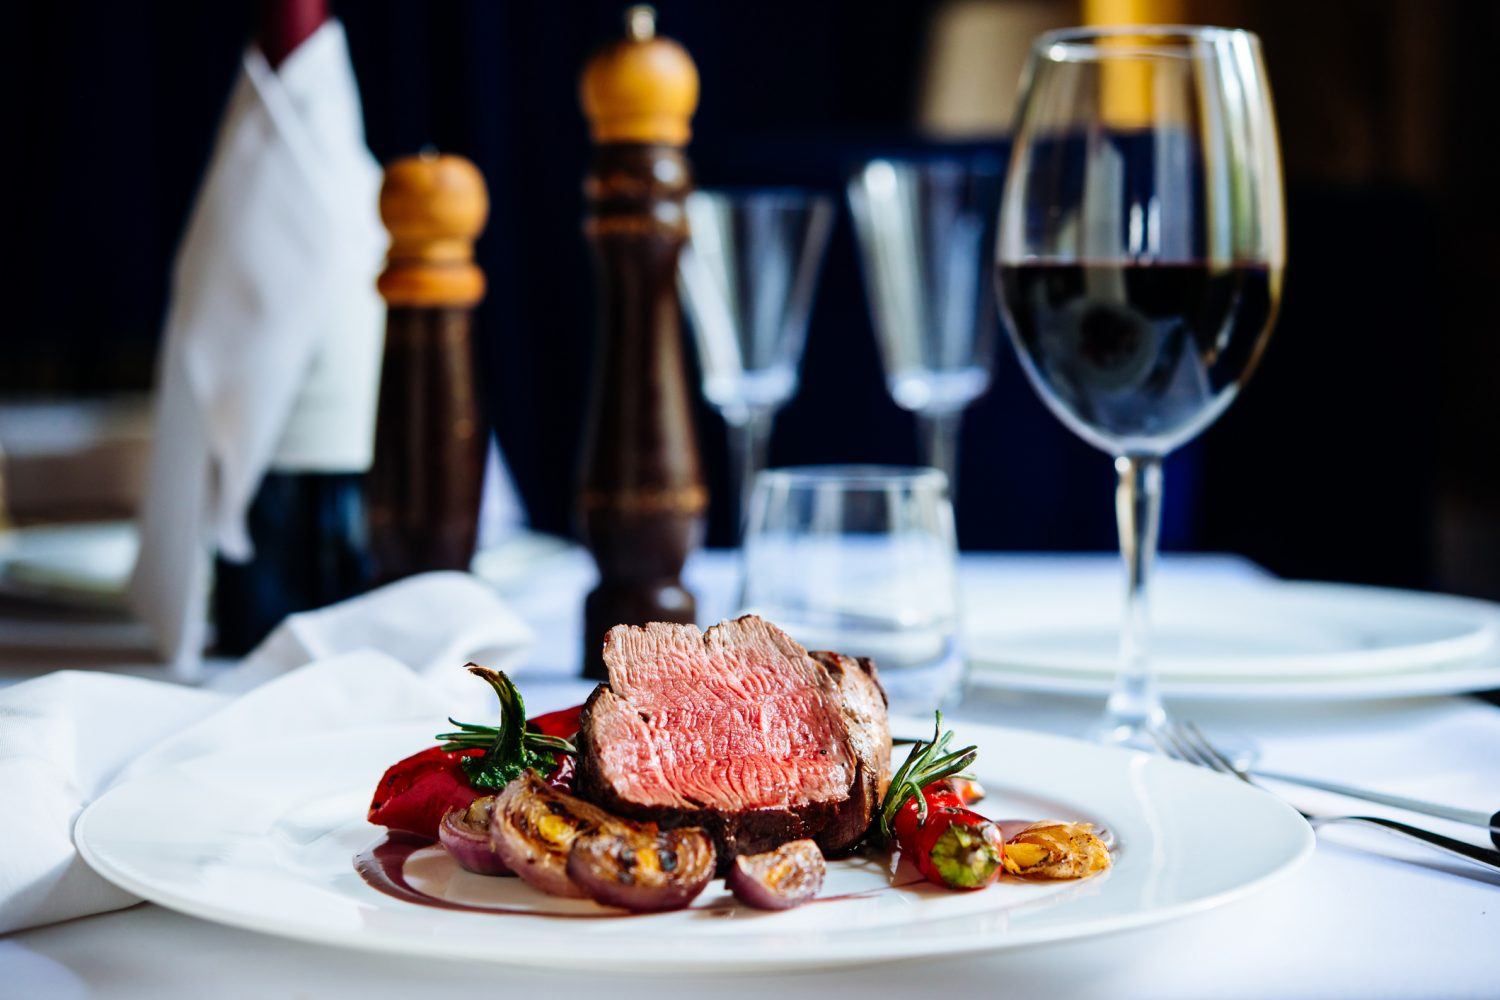 beef steak served at fine dining restaurant